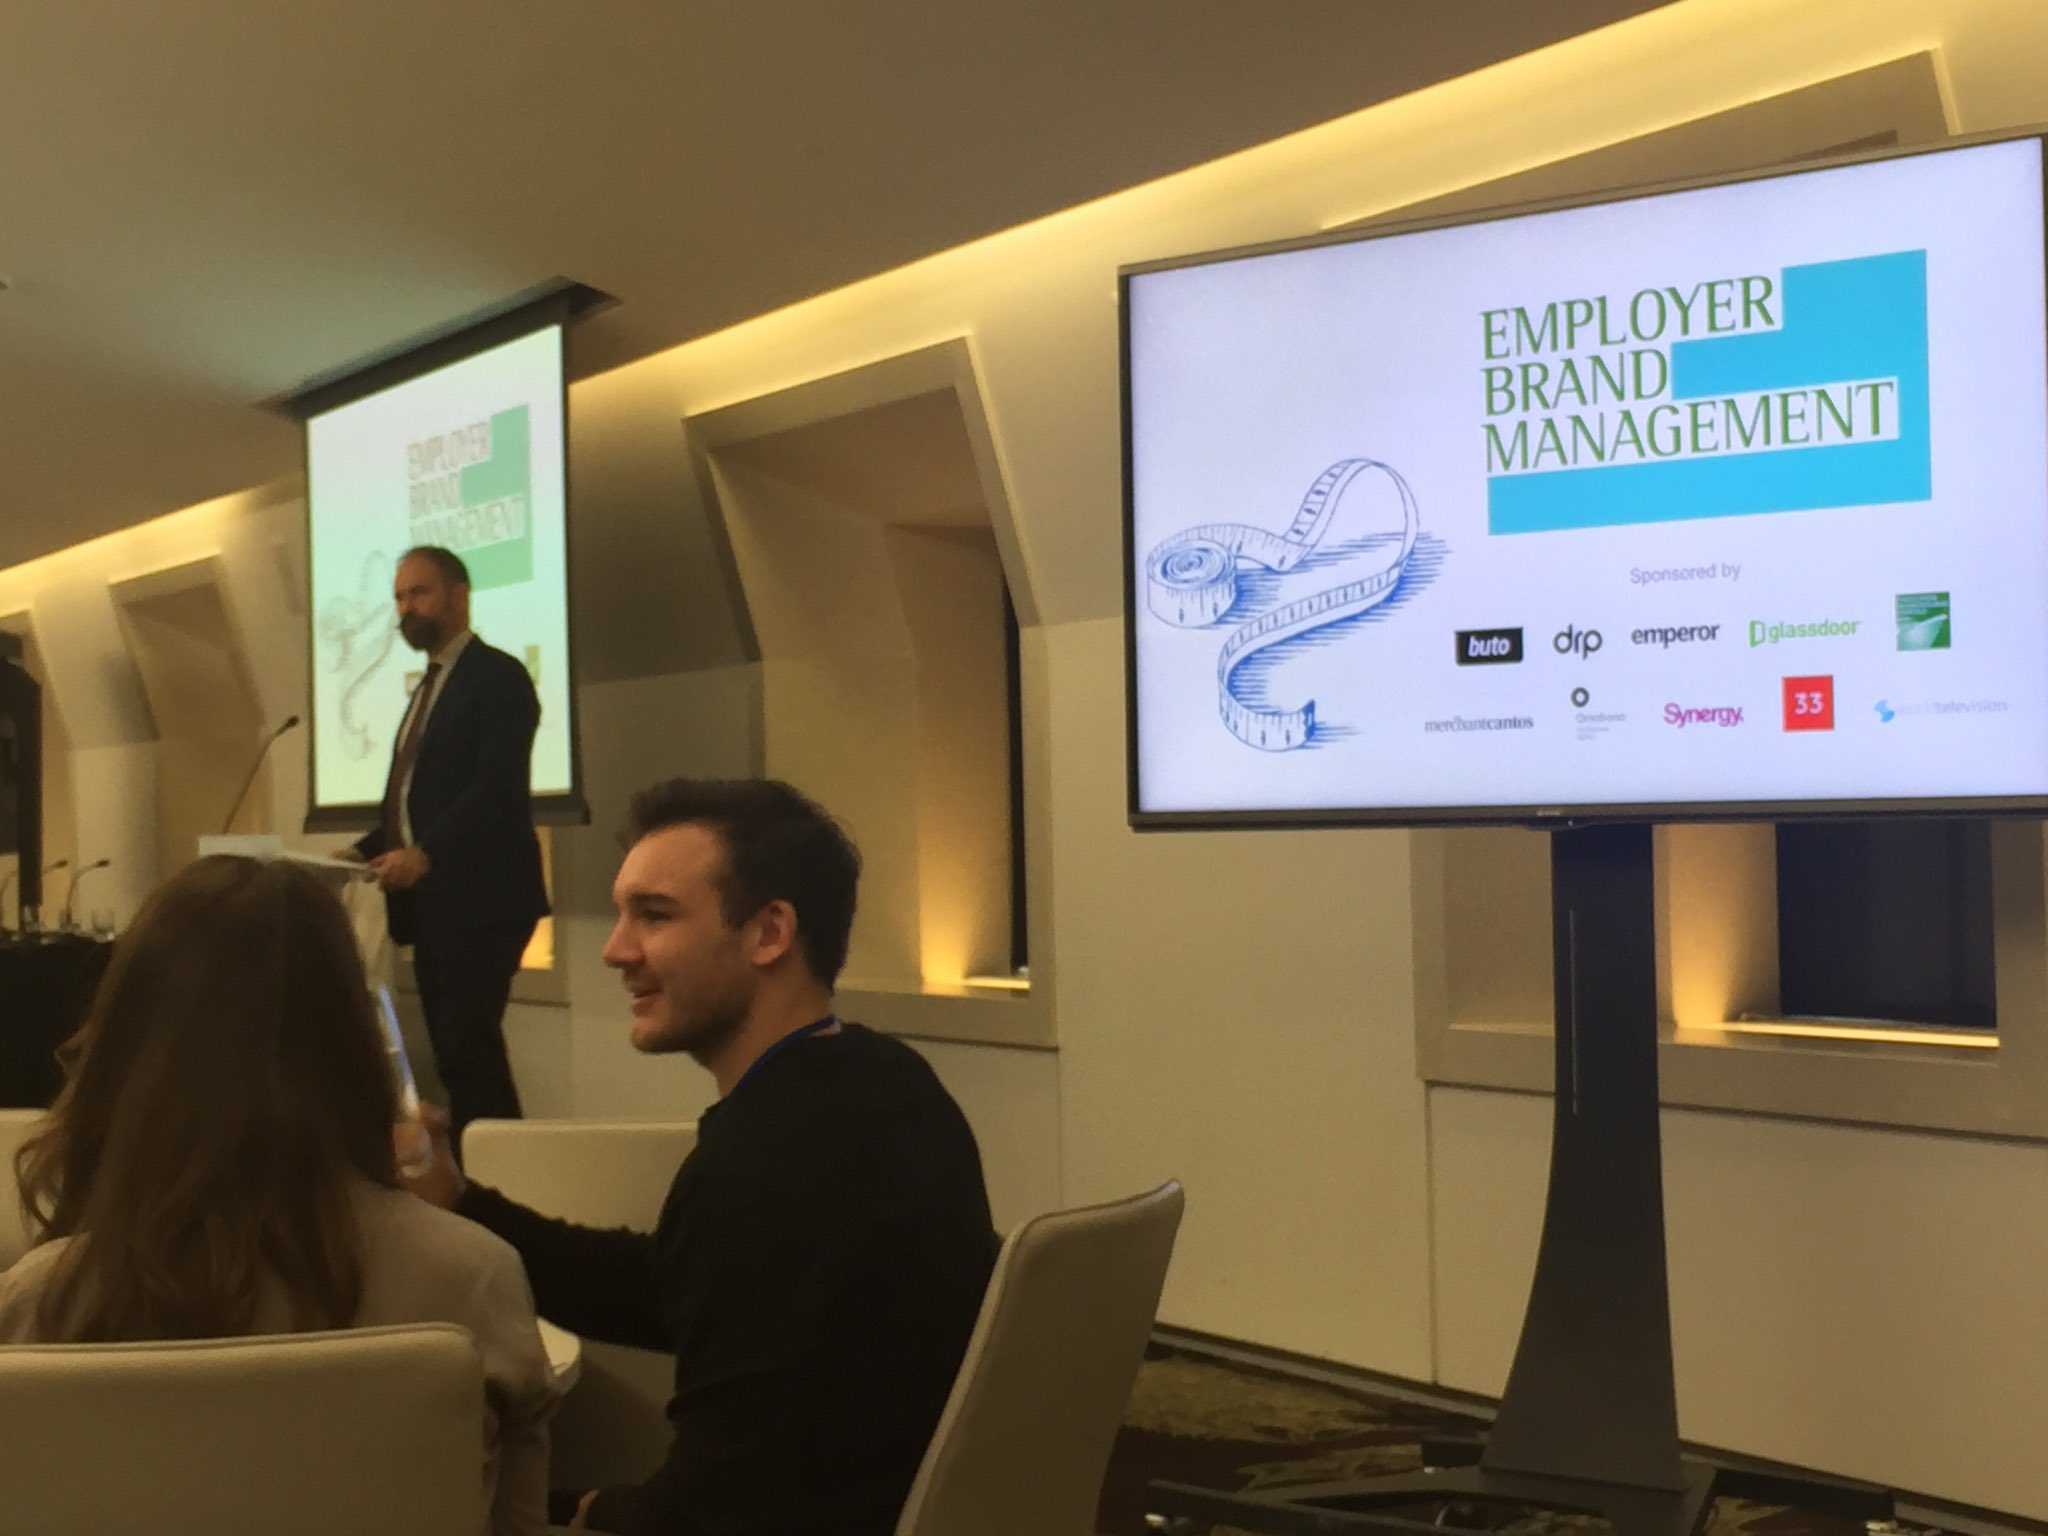 Just about to start at the  @_EmployerBrand Management Conference in London #EBMconf #Glassdoor #EmployerBranding https://t.co/BwcGaFaNLq